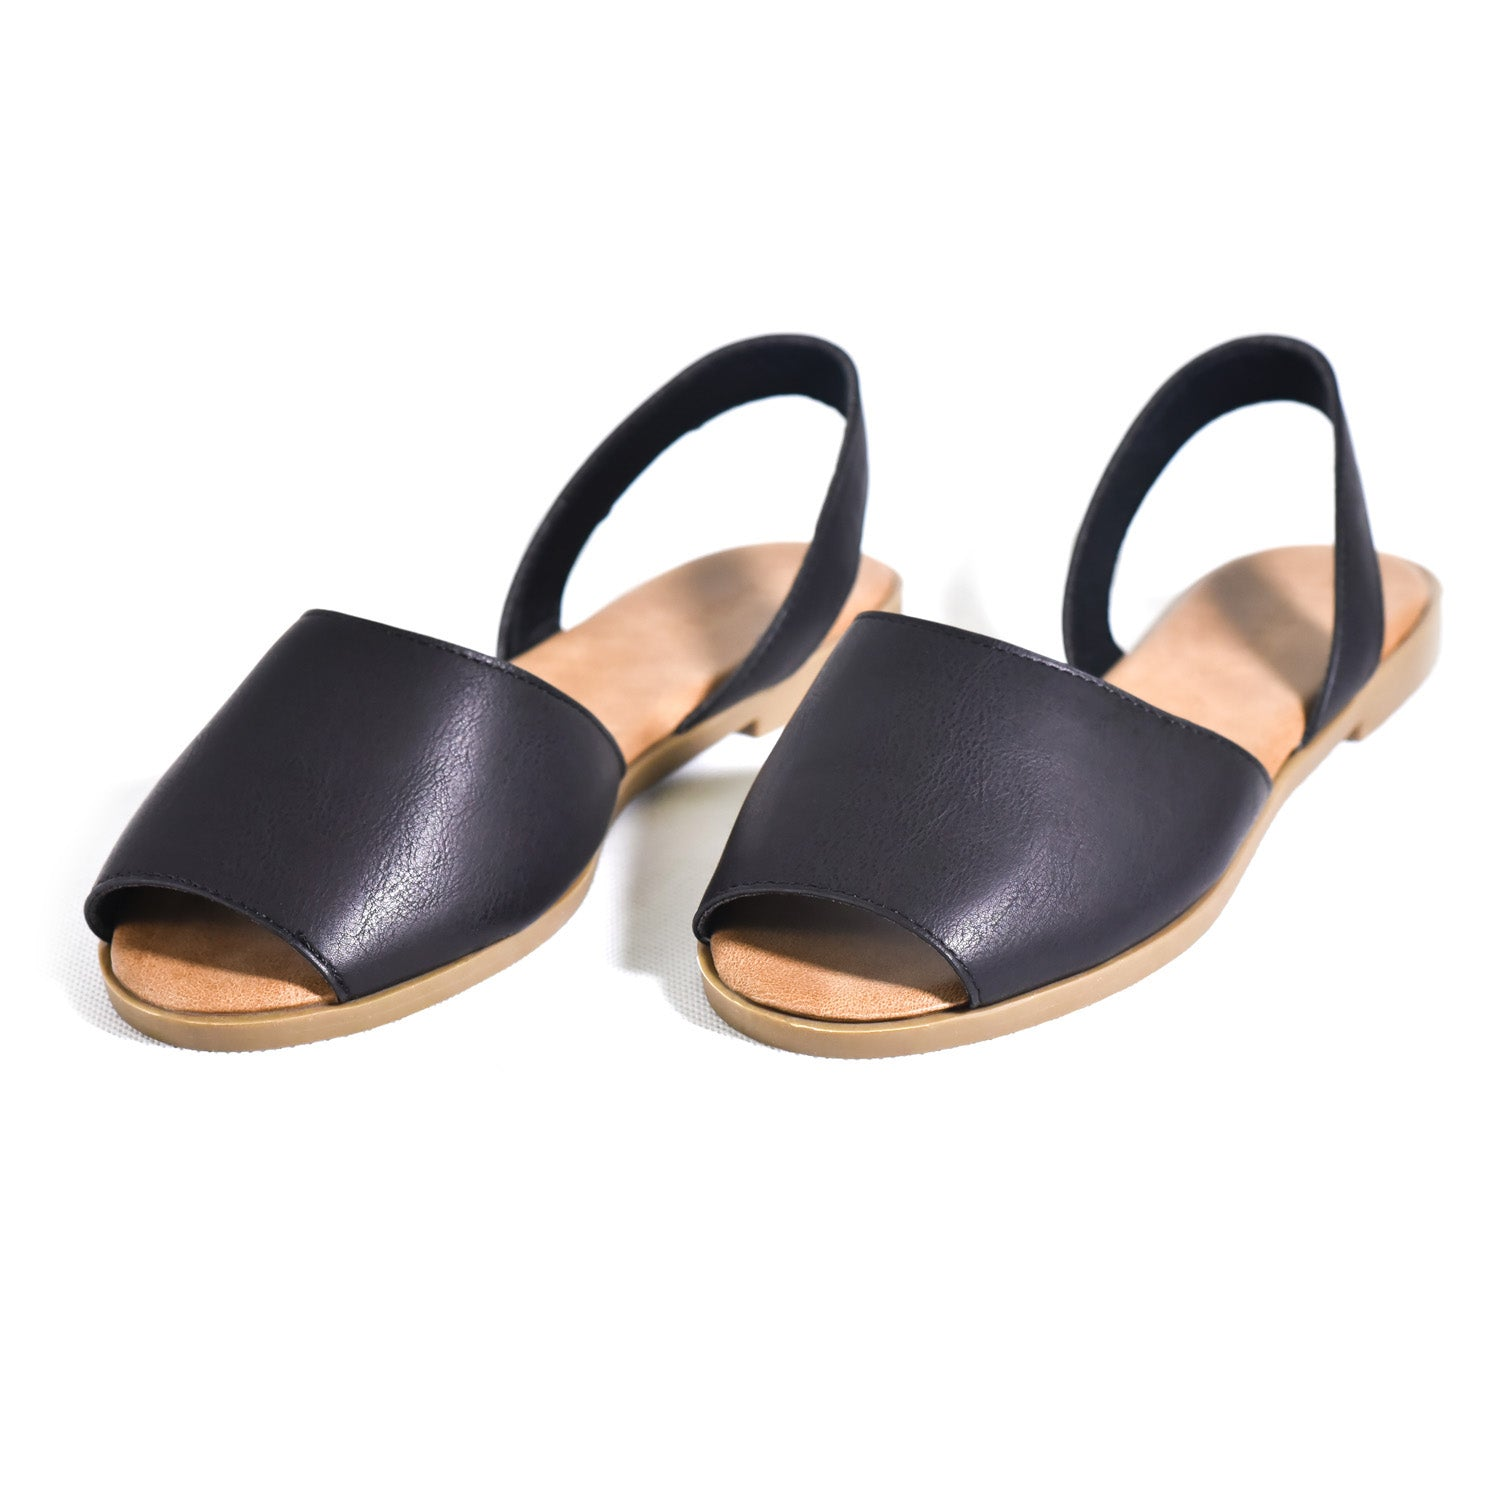 Metallic Sandal with Rear Bracelet